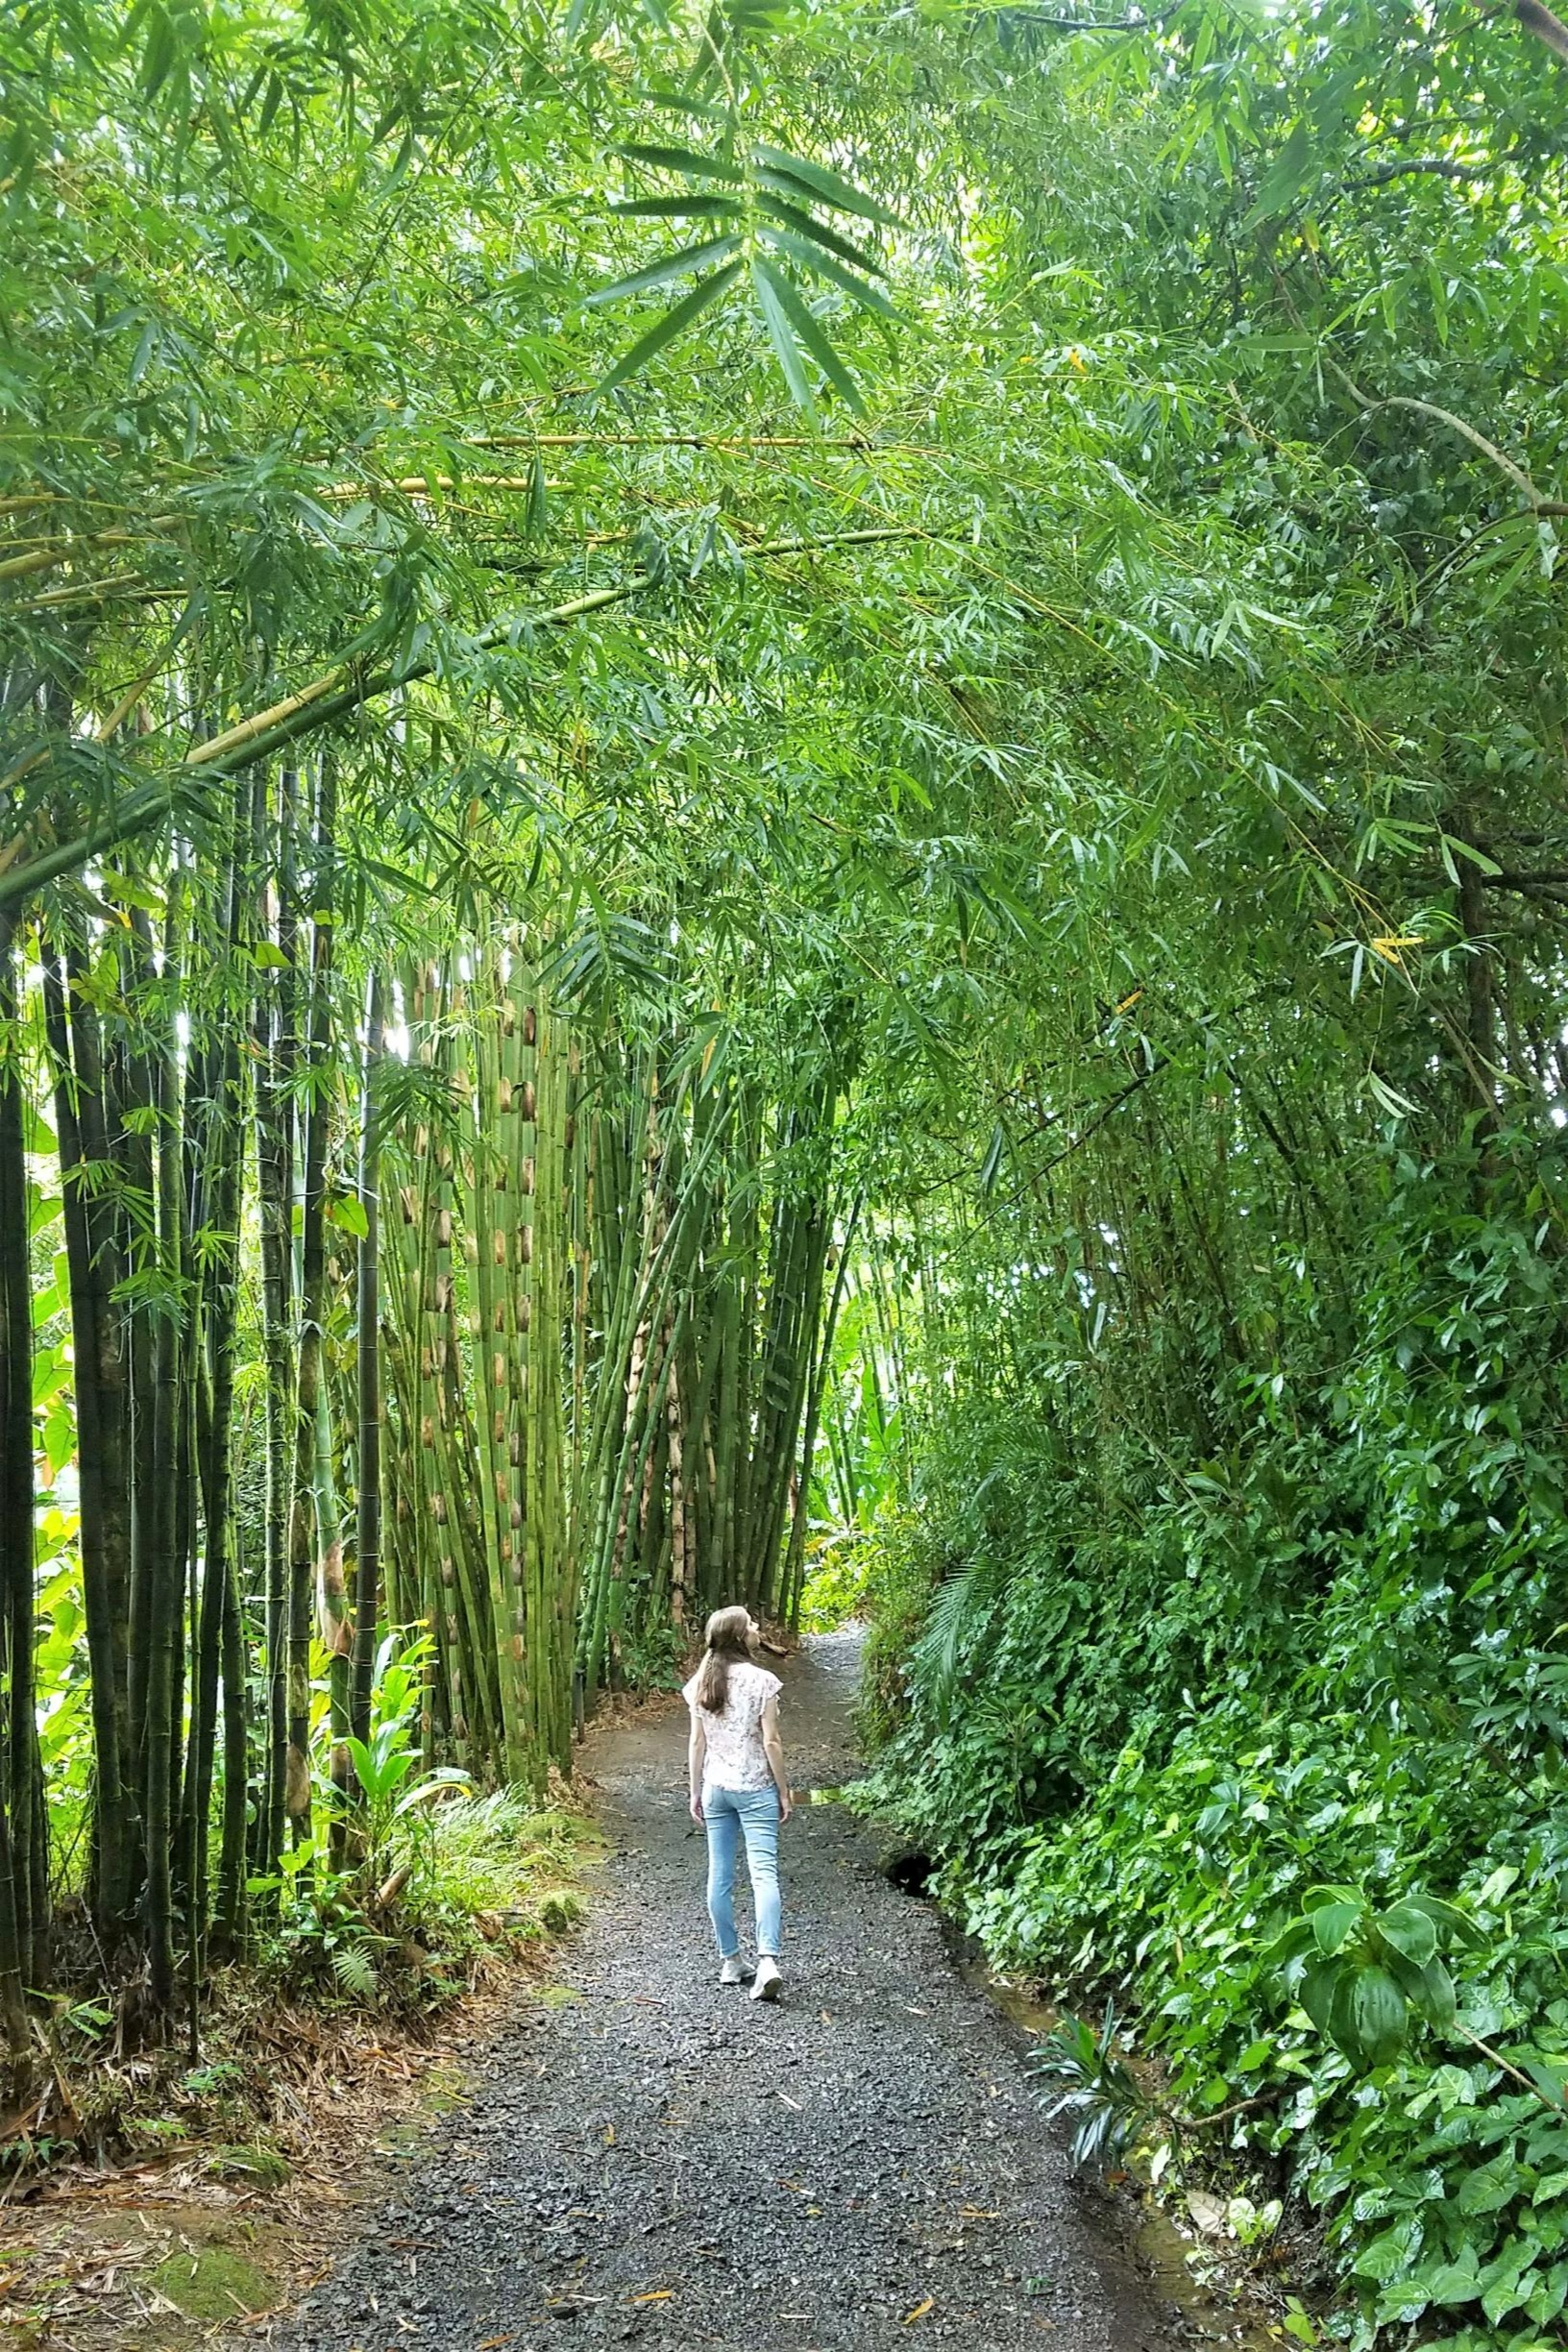 This bamboo forest is one of the most popular Road to Hana stops located in Maui's Garden of Eden.